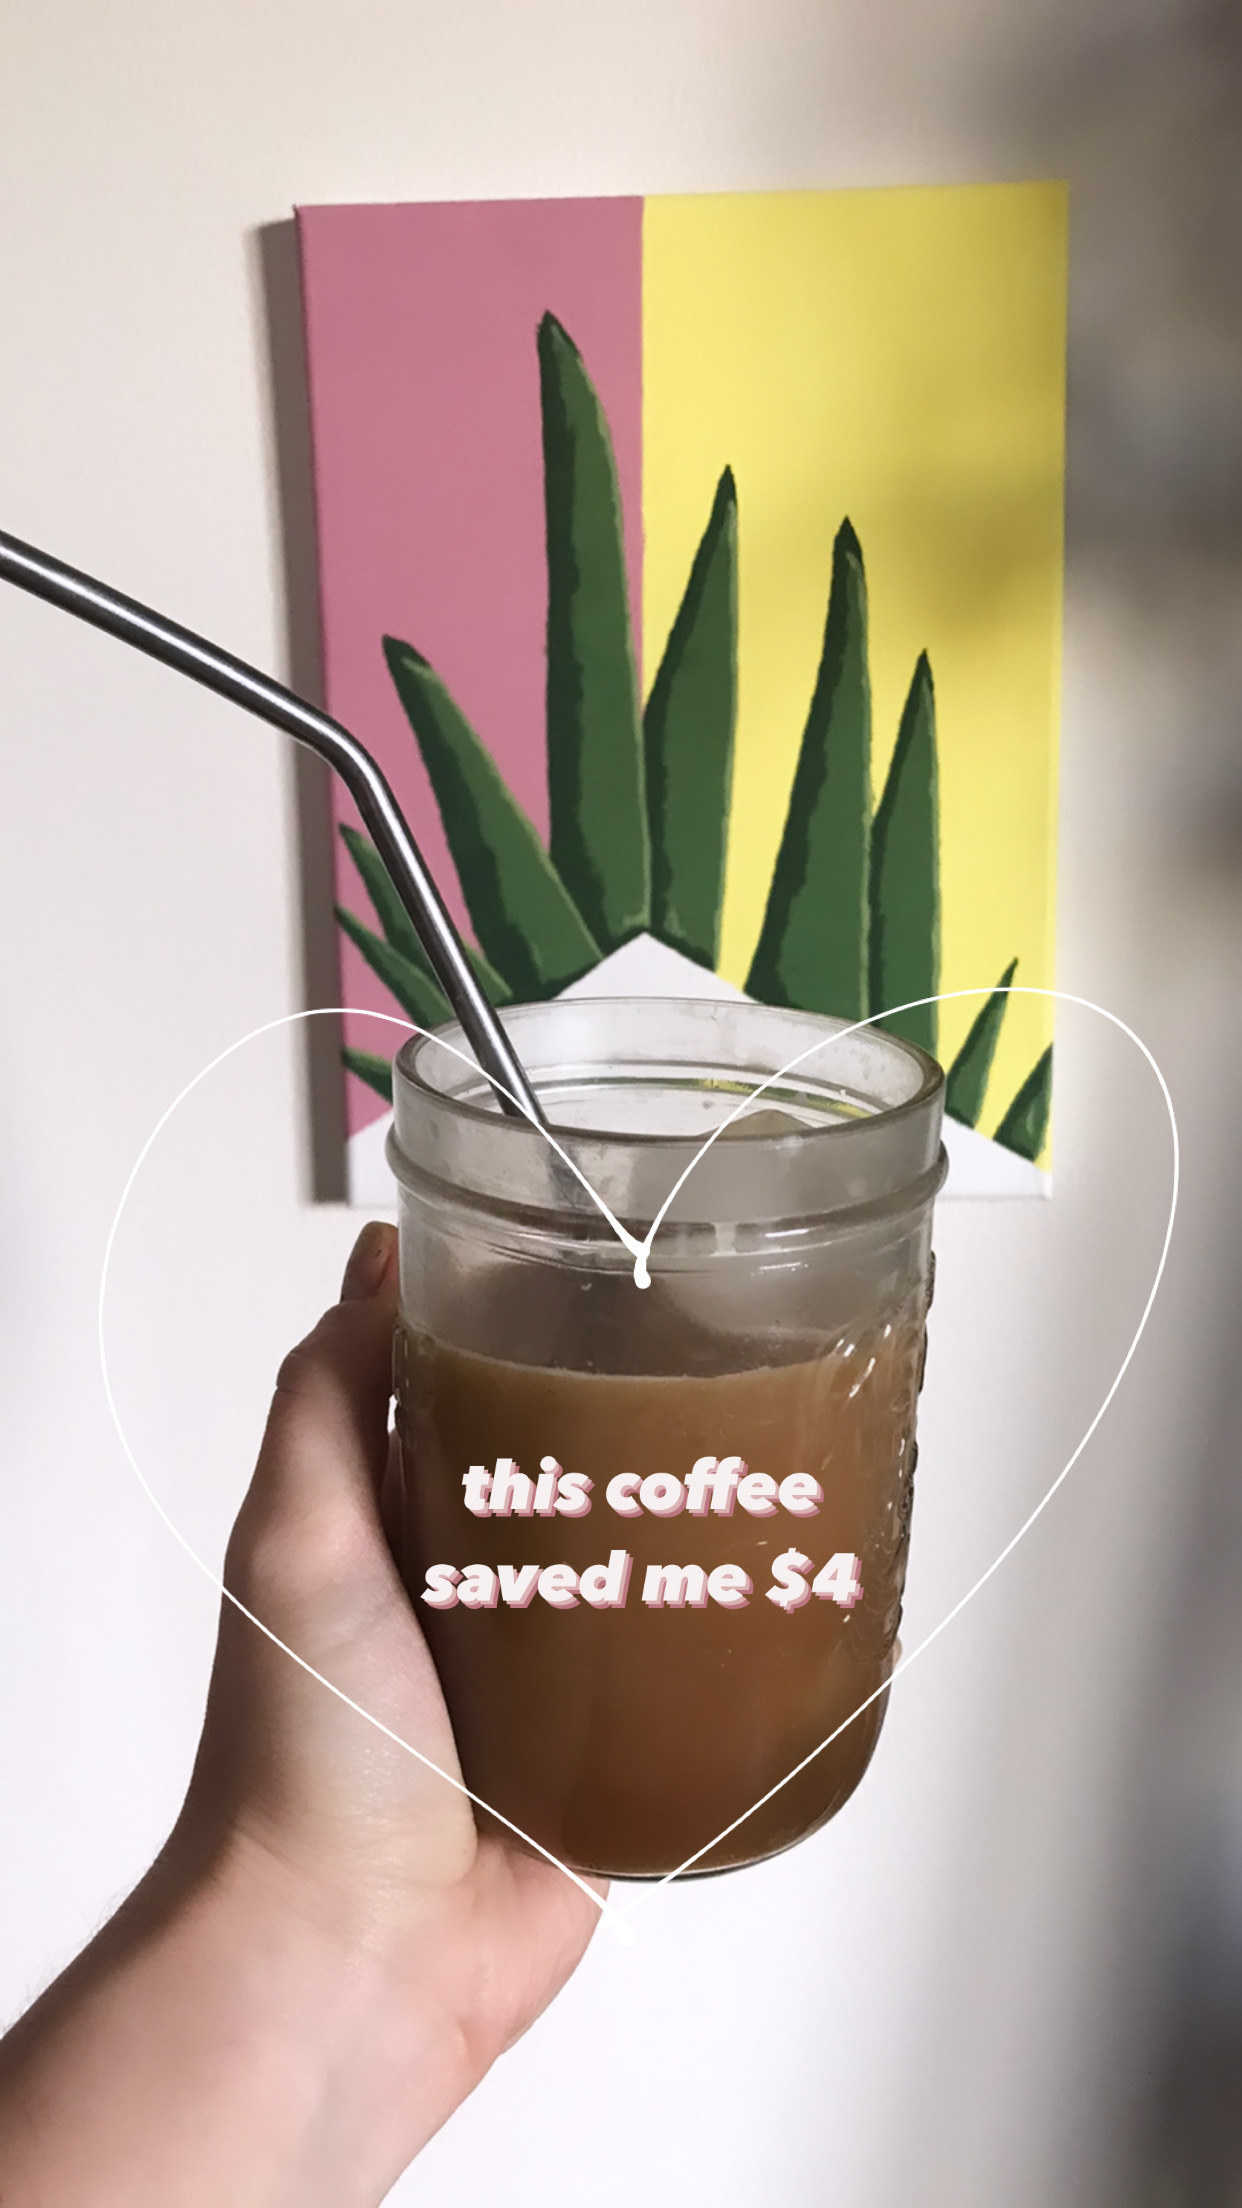 "A hand holds up a mason jar of coffee encircled in a drawn heart and text ""this coffee saved me $4"""